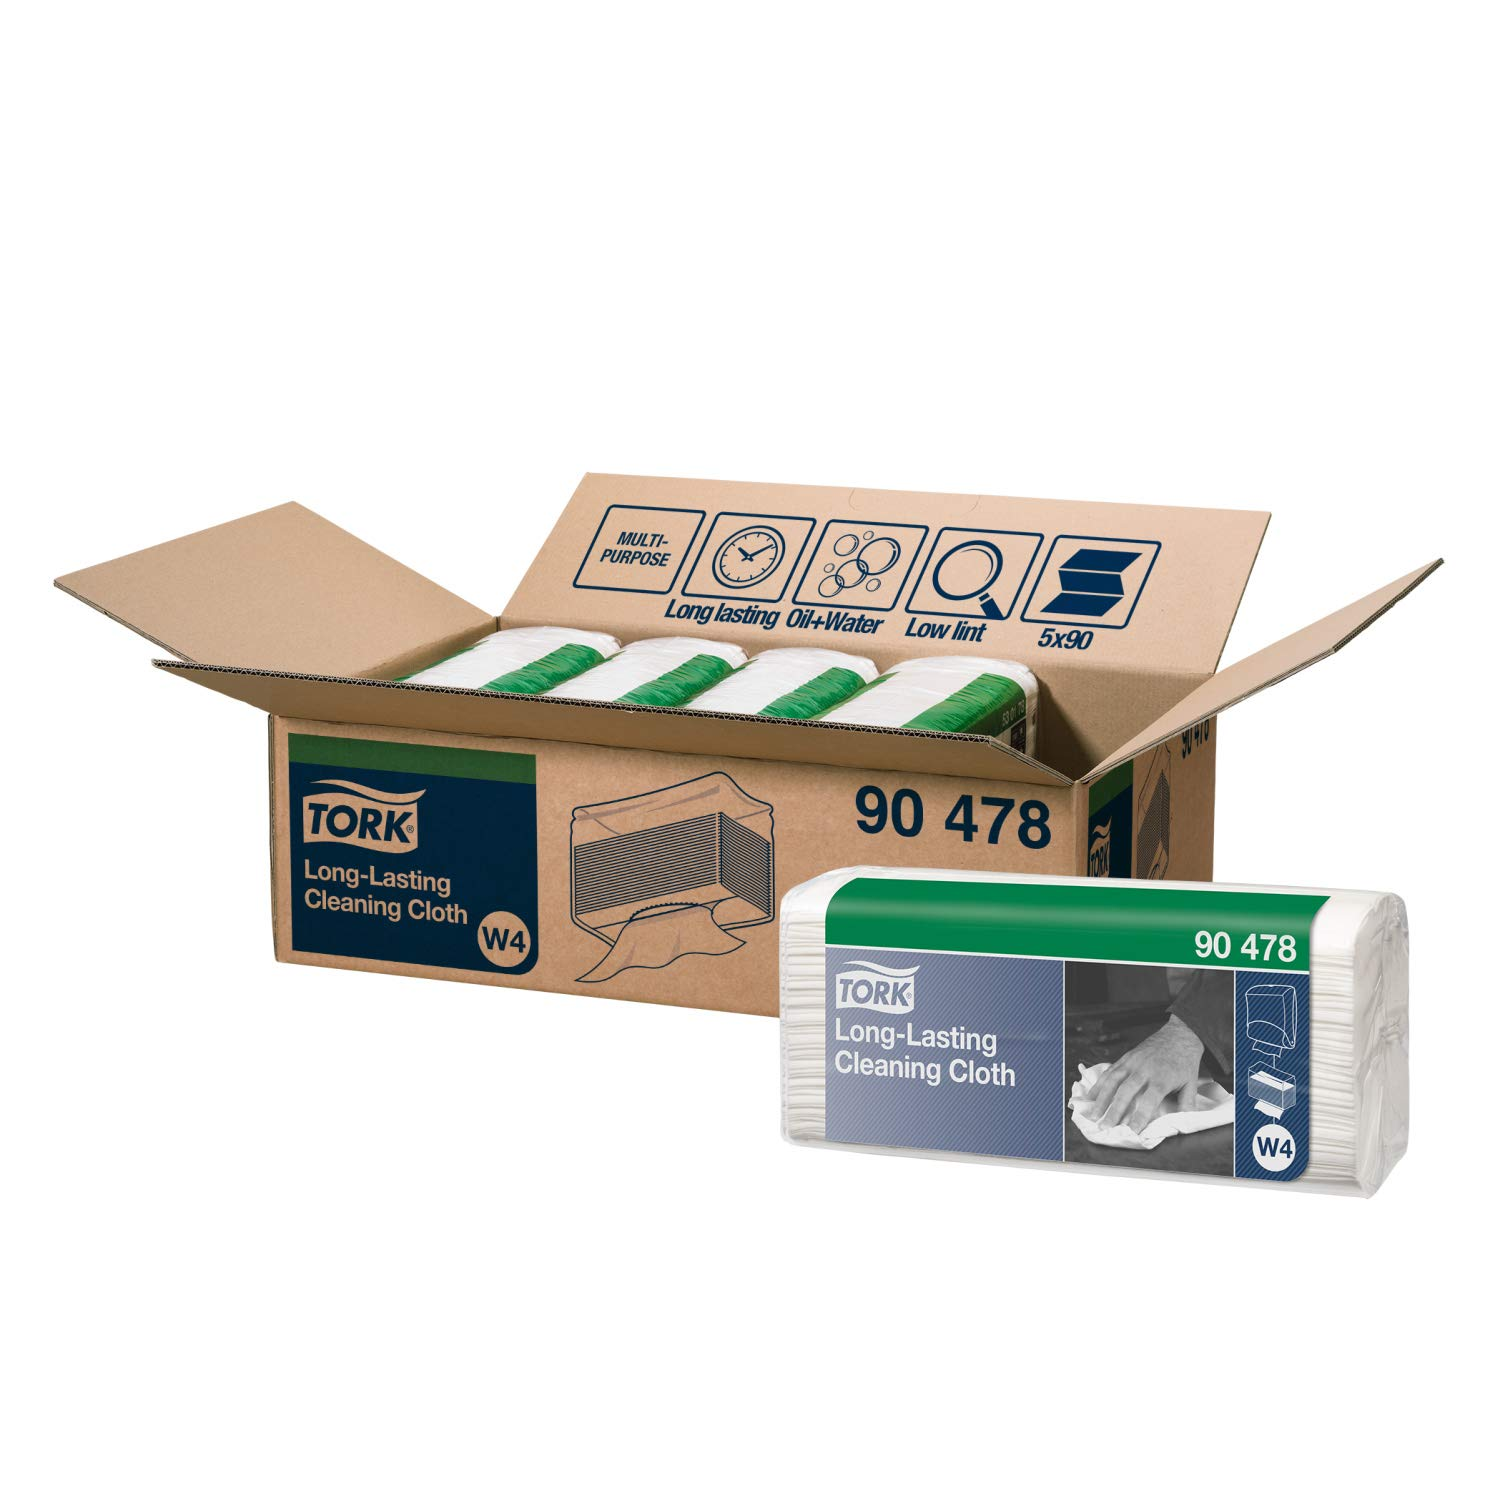 Tork Durable Cleaning Cloths Folded W4